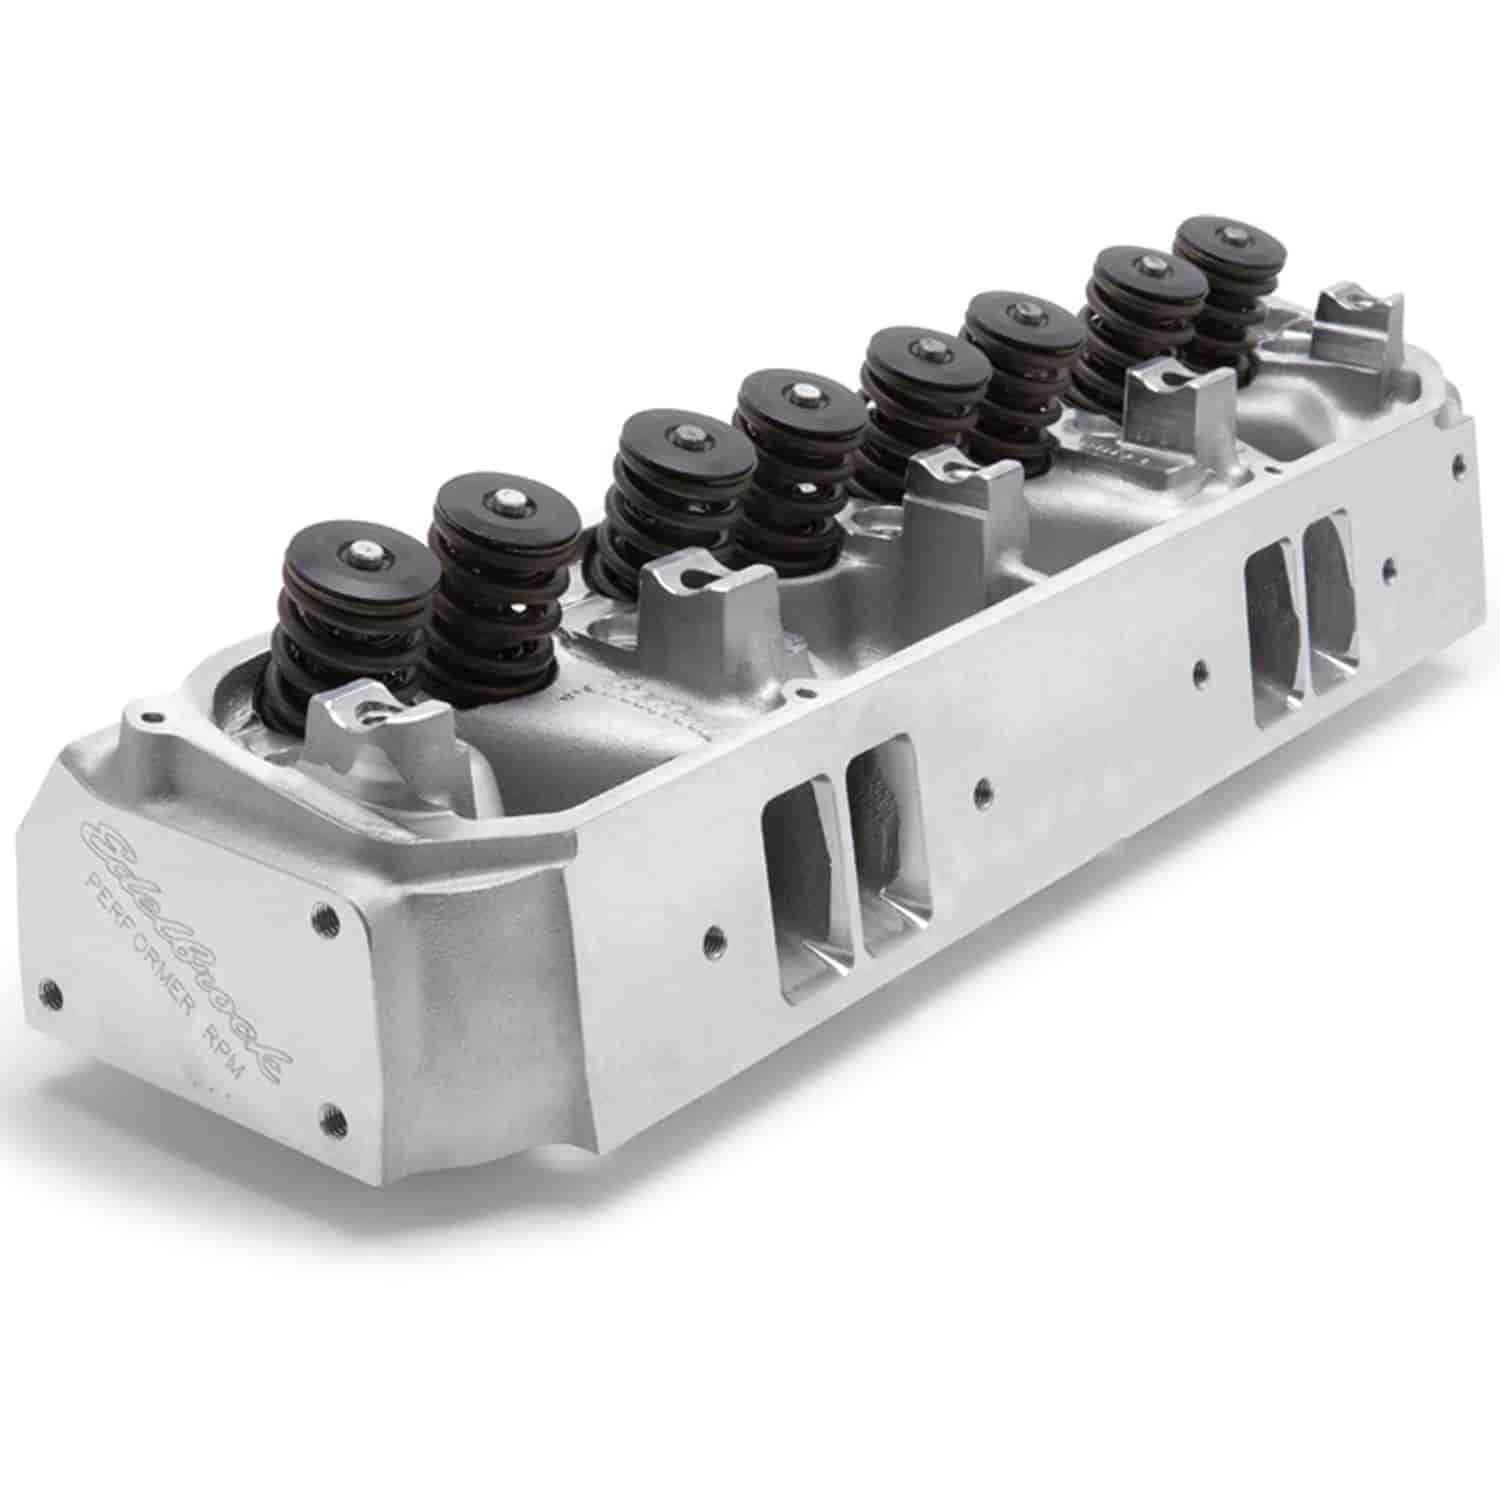 Edelbrock 60929 - Edelbrock Big Block Chrysler Performer RPM Heads